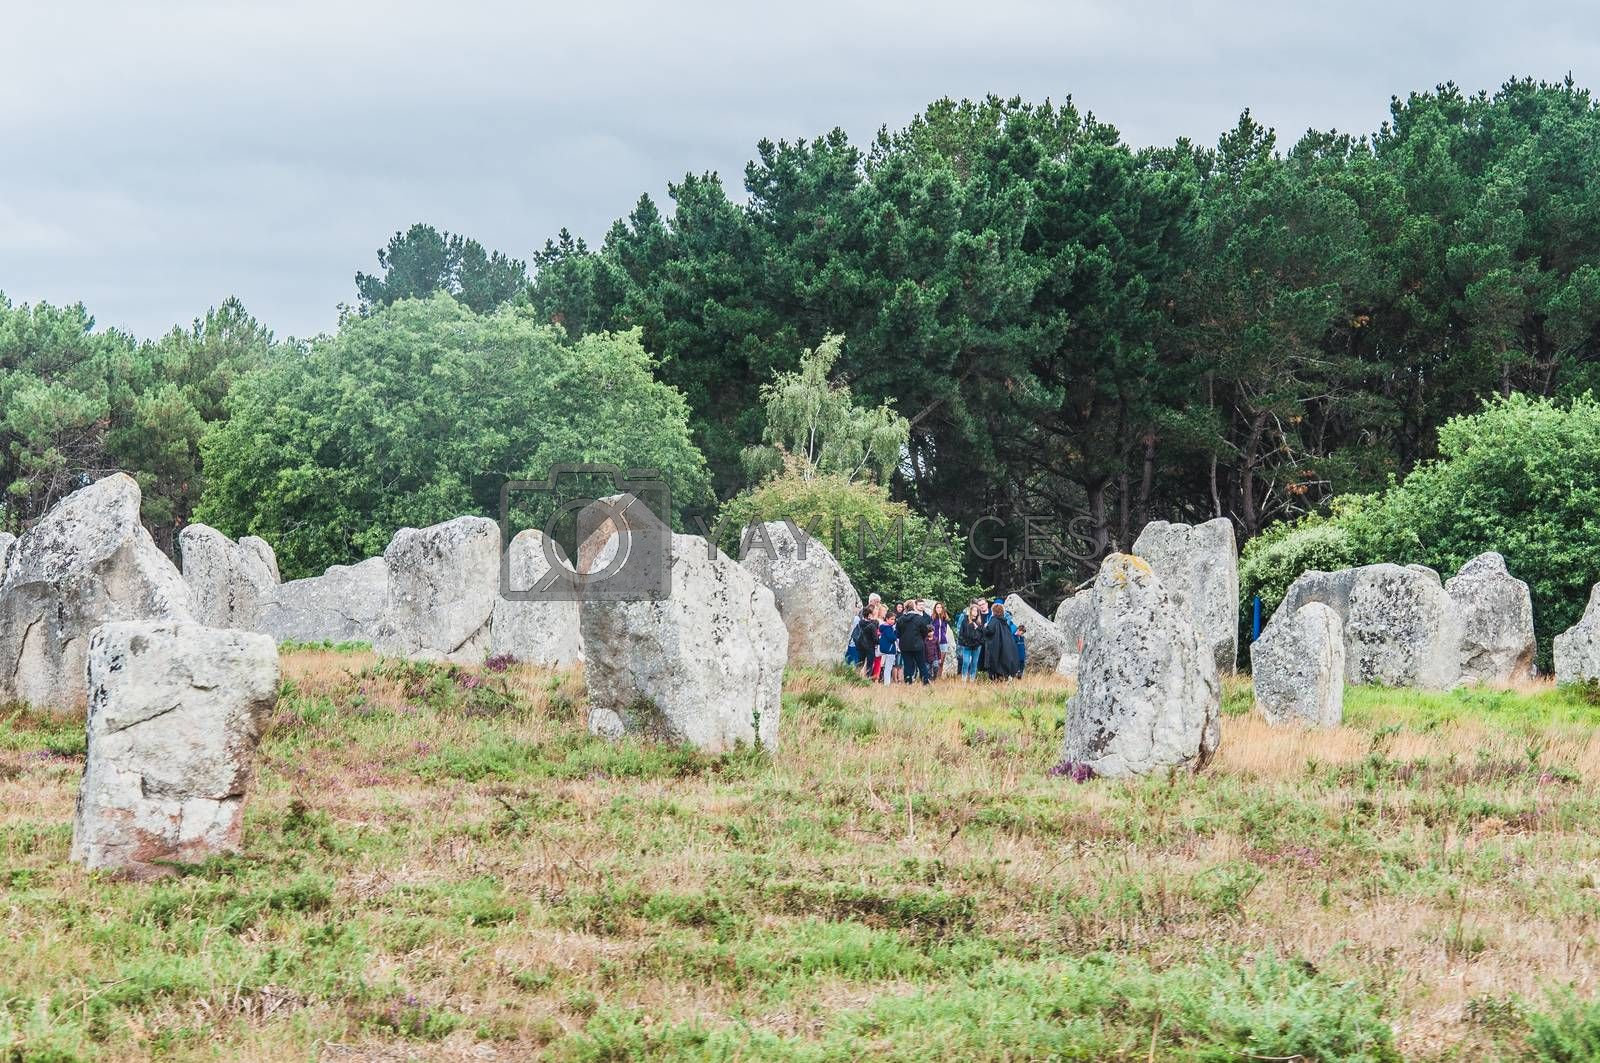 Menhir fields in Carnac dnas the morbihan in brittany, France by raphtong